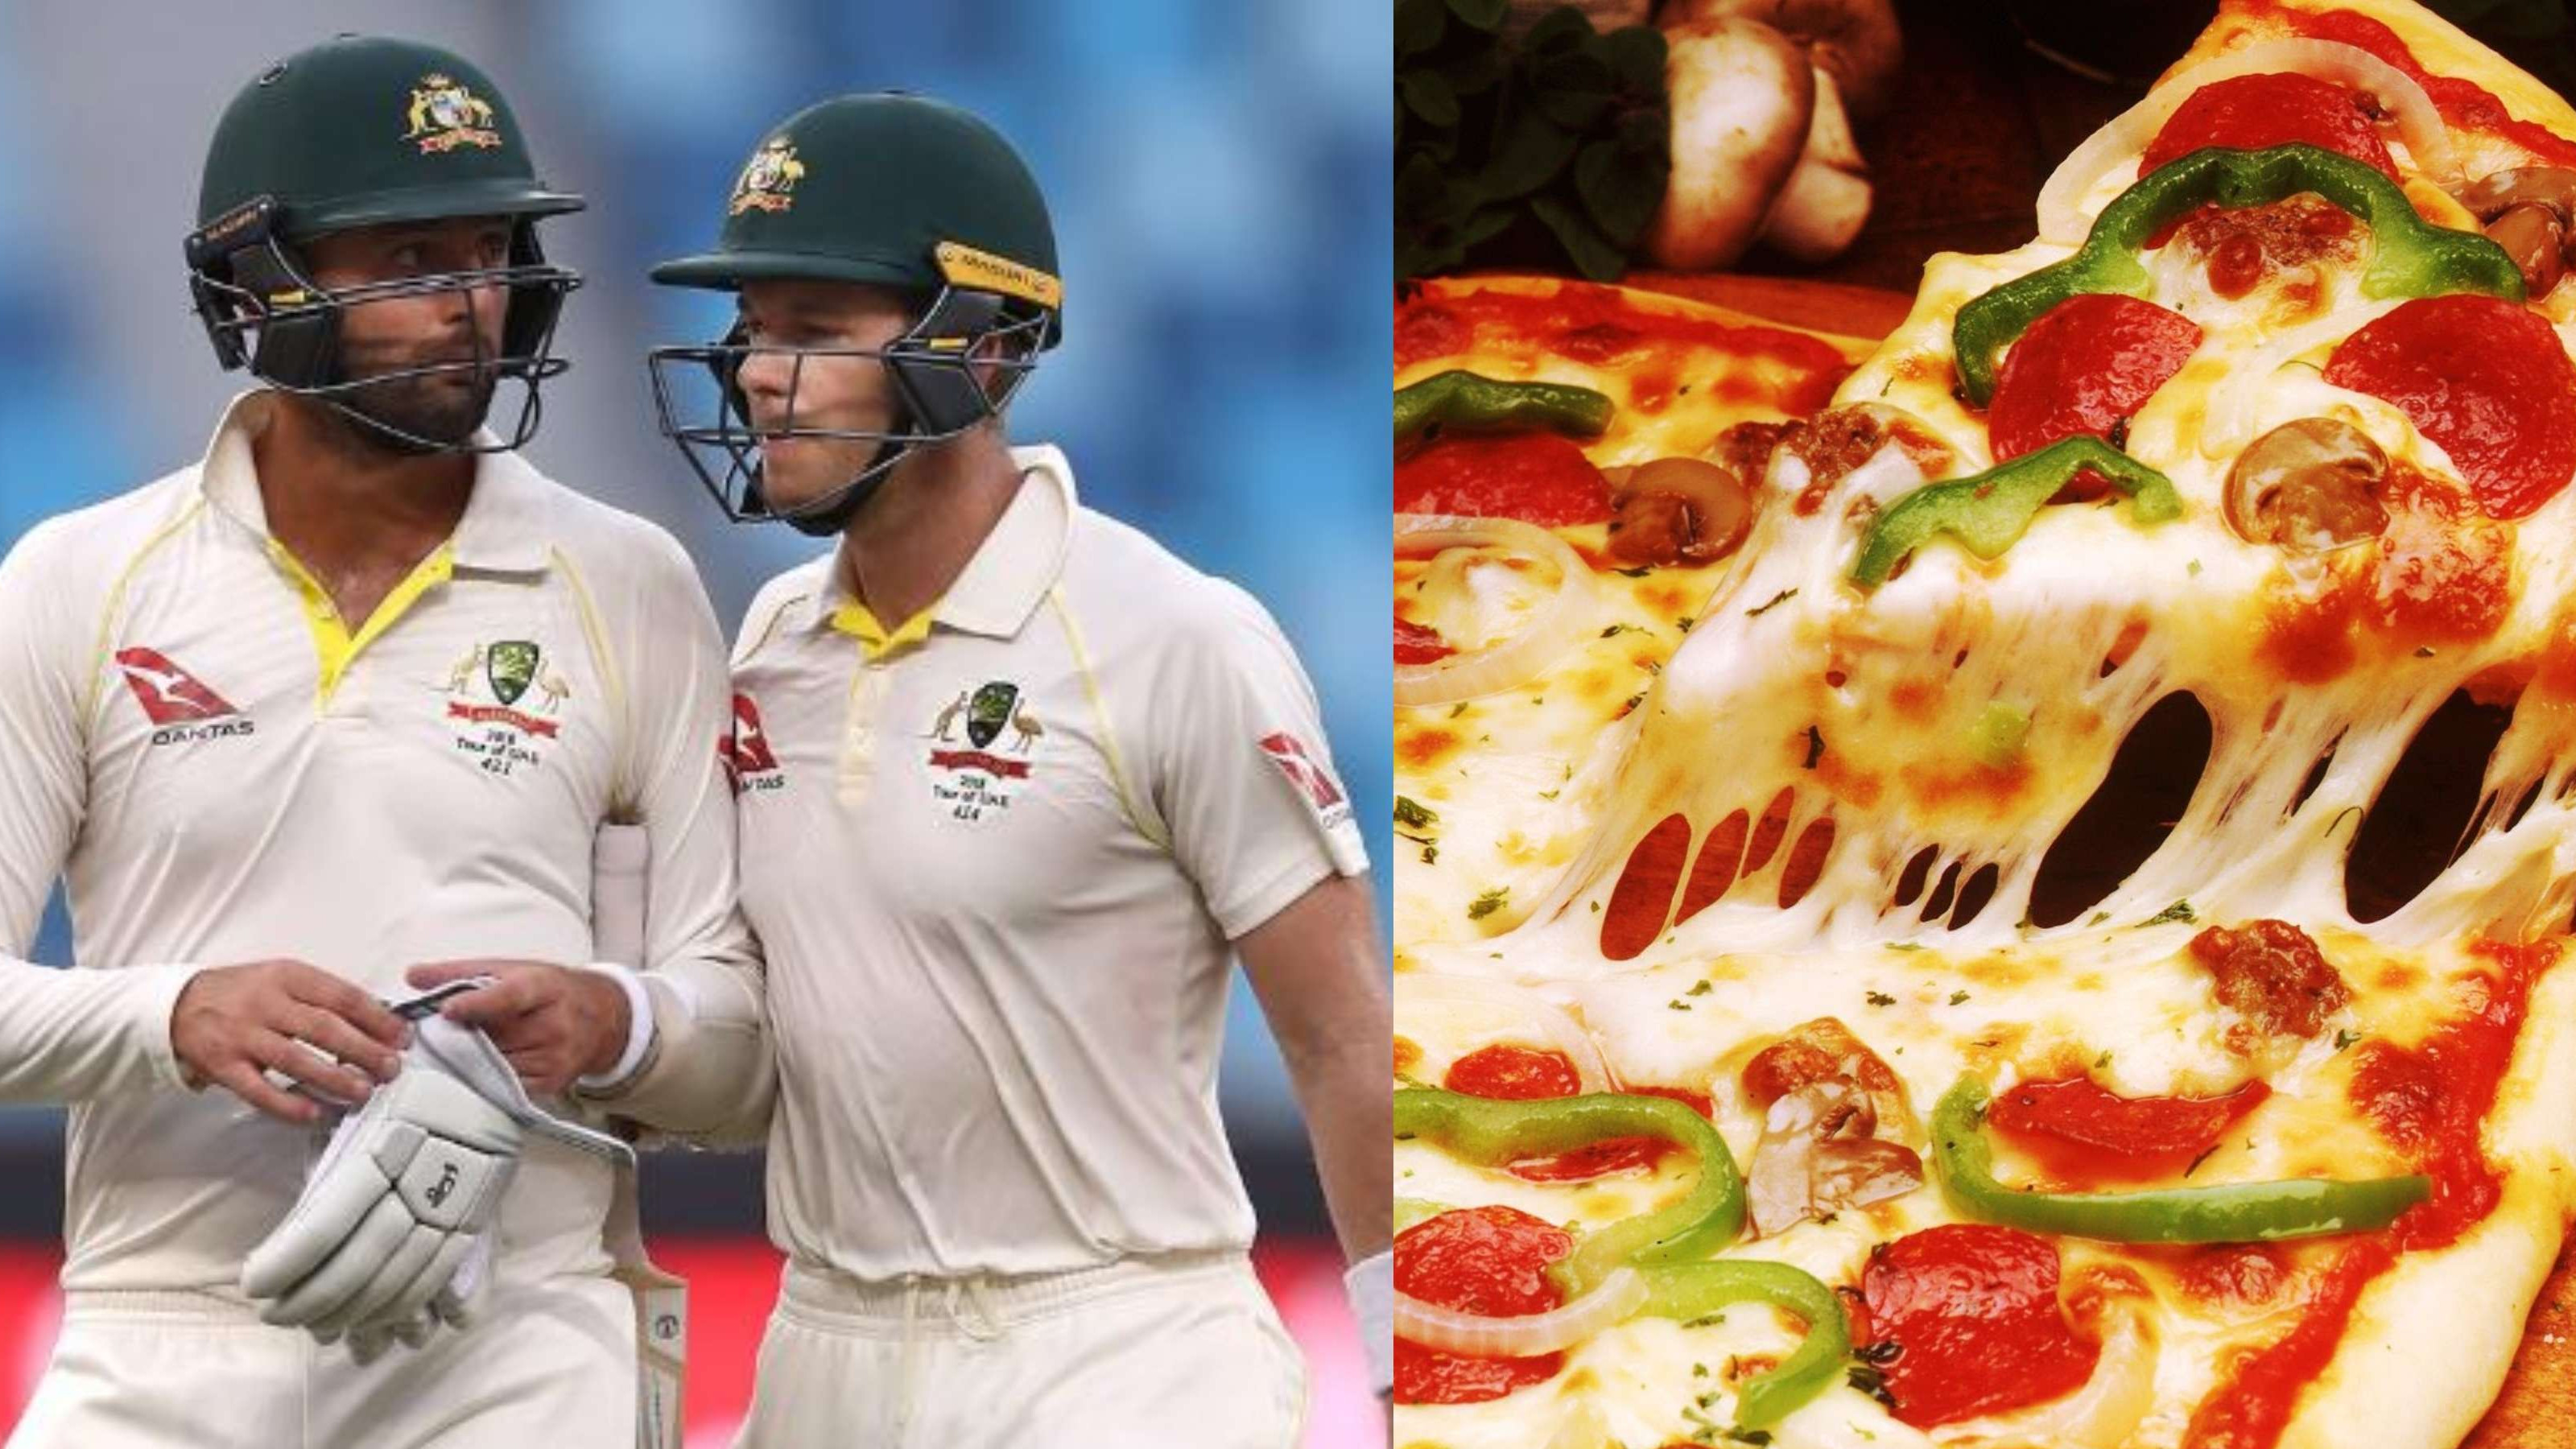 PAK v AUS 2018: Tim Paine and Nathan Lyon talked 'Pizza' during their marathon partnership